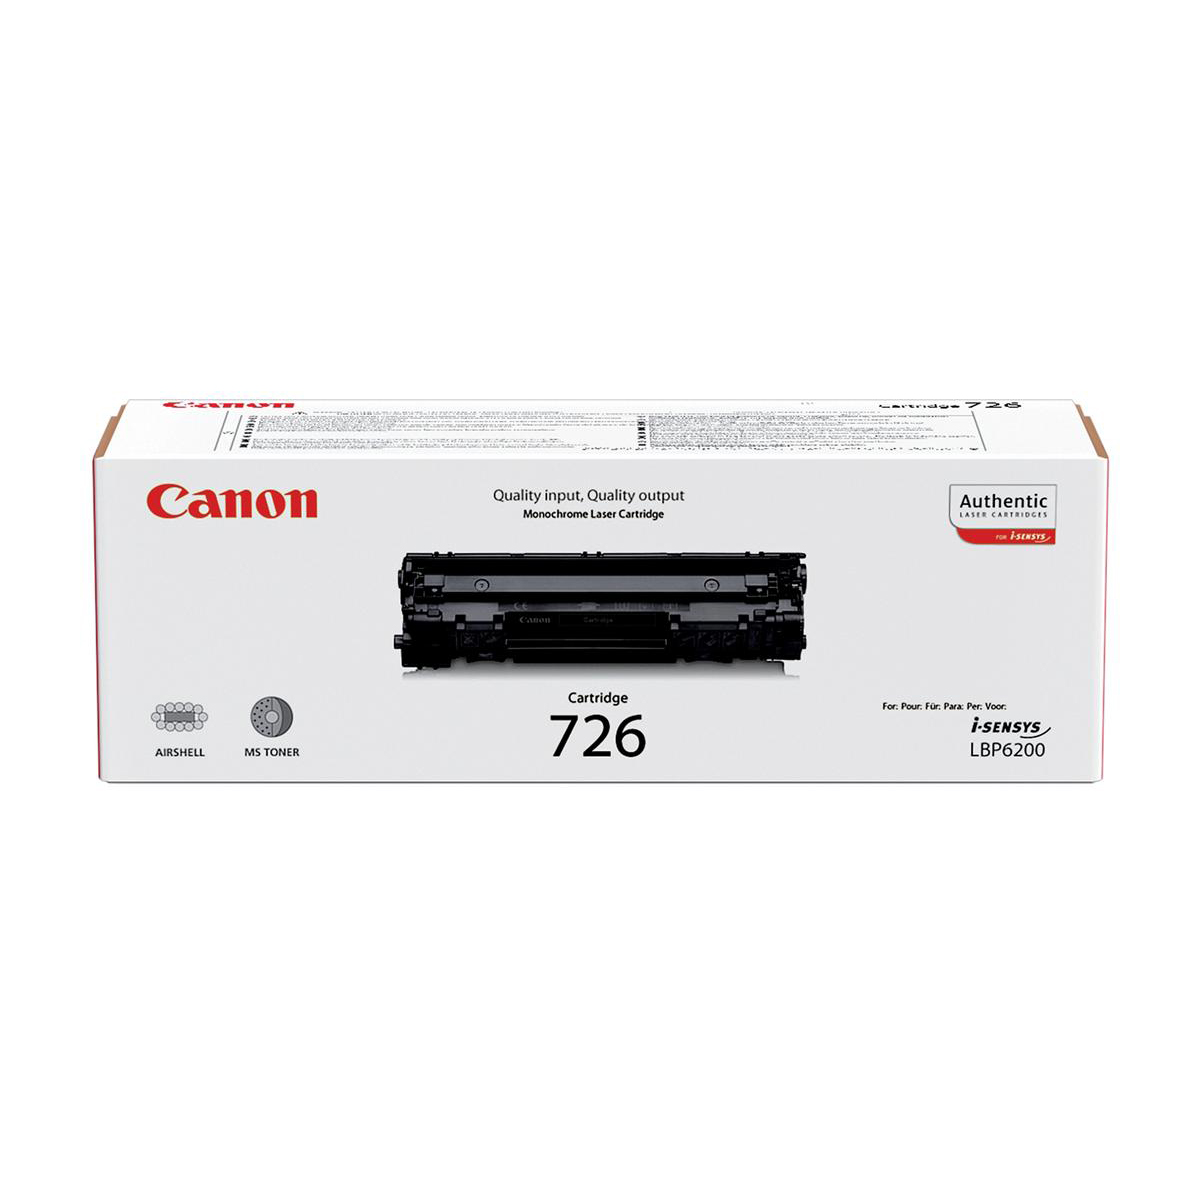 Canon 726 Laser Toner Cartridge Page Life 2100pp Black Ref 3483B002